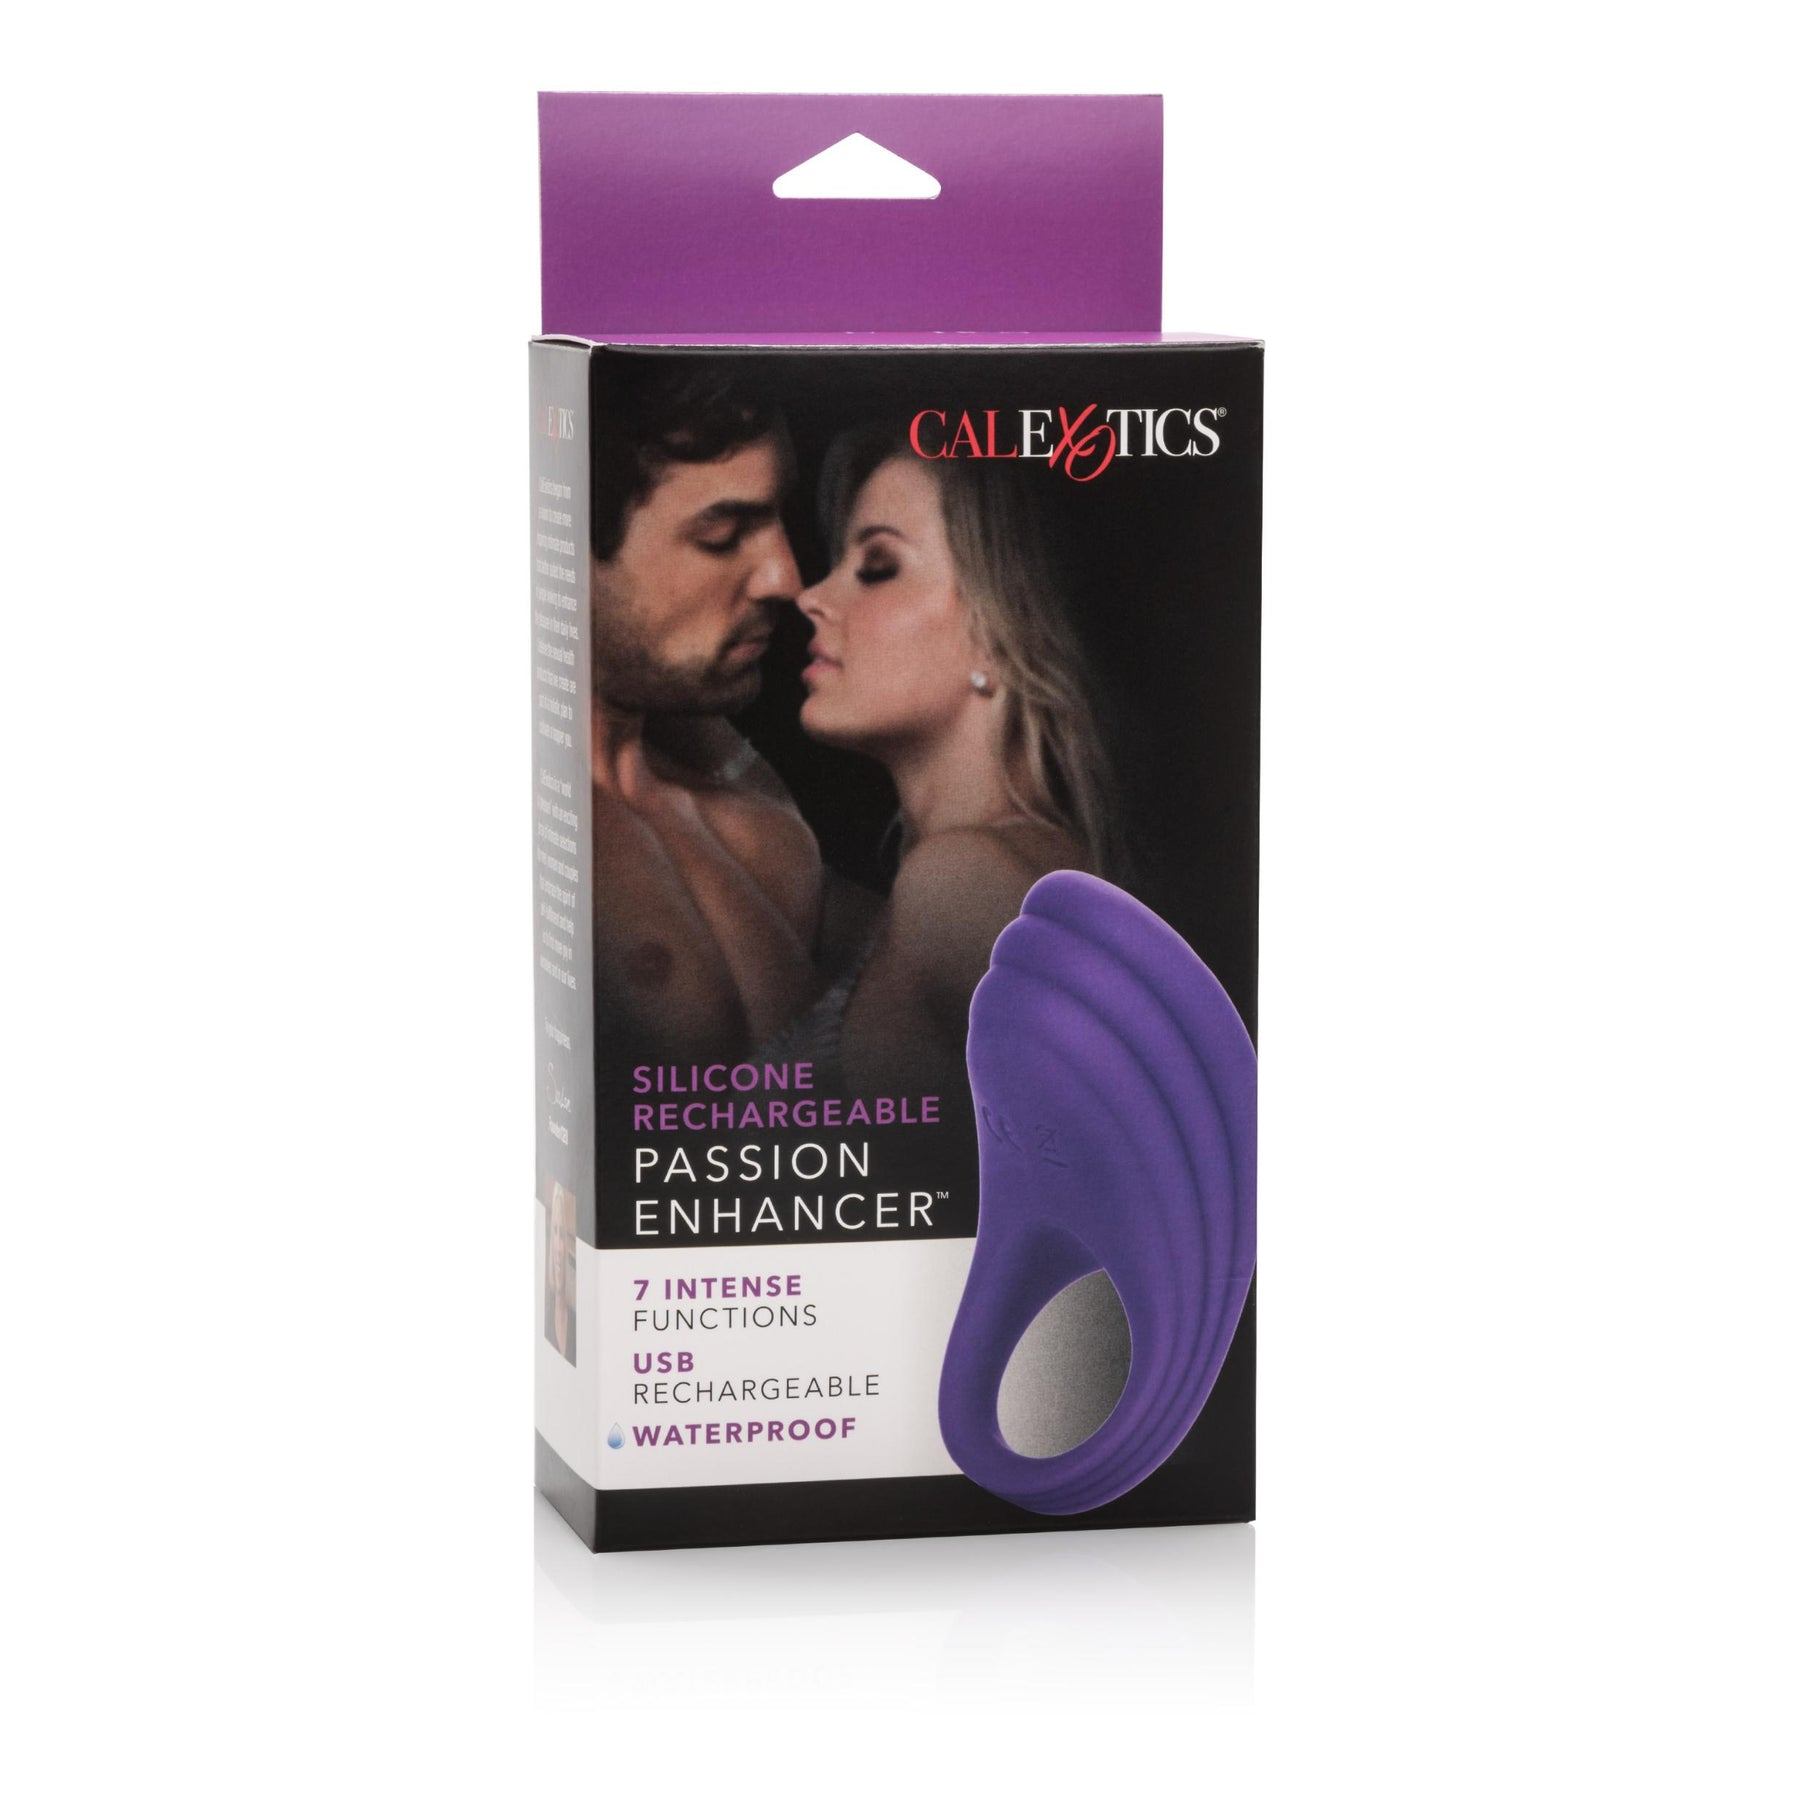 Silicone Rechargeable Passion Enhancer